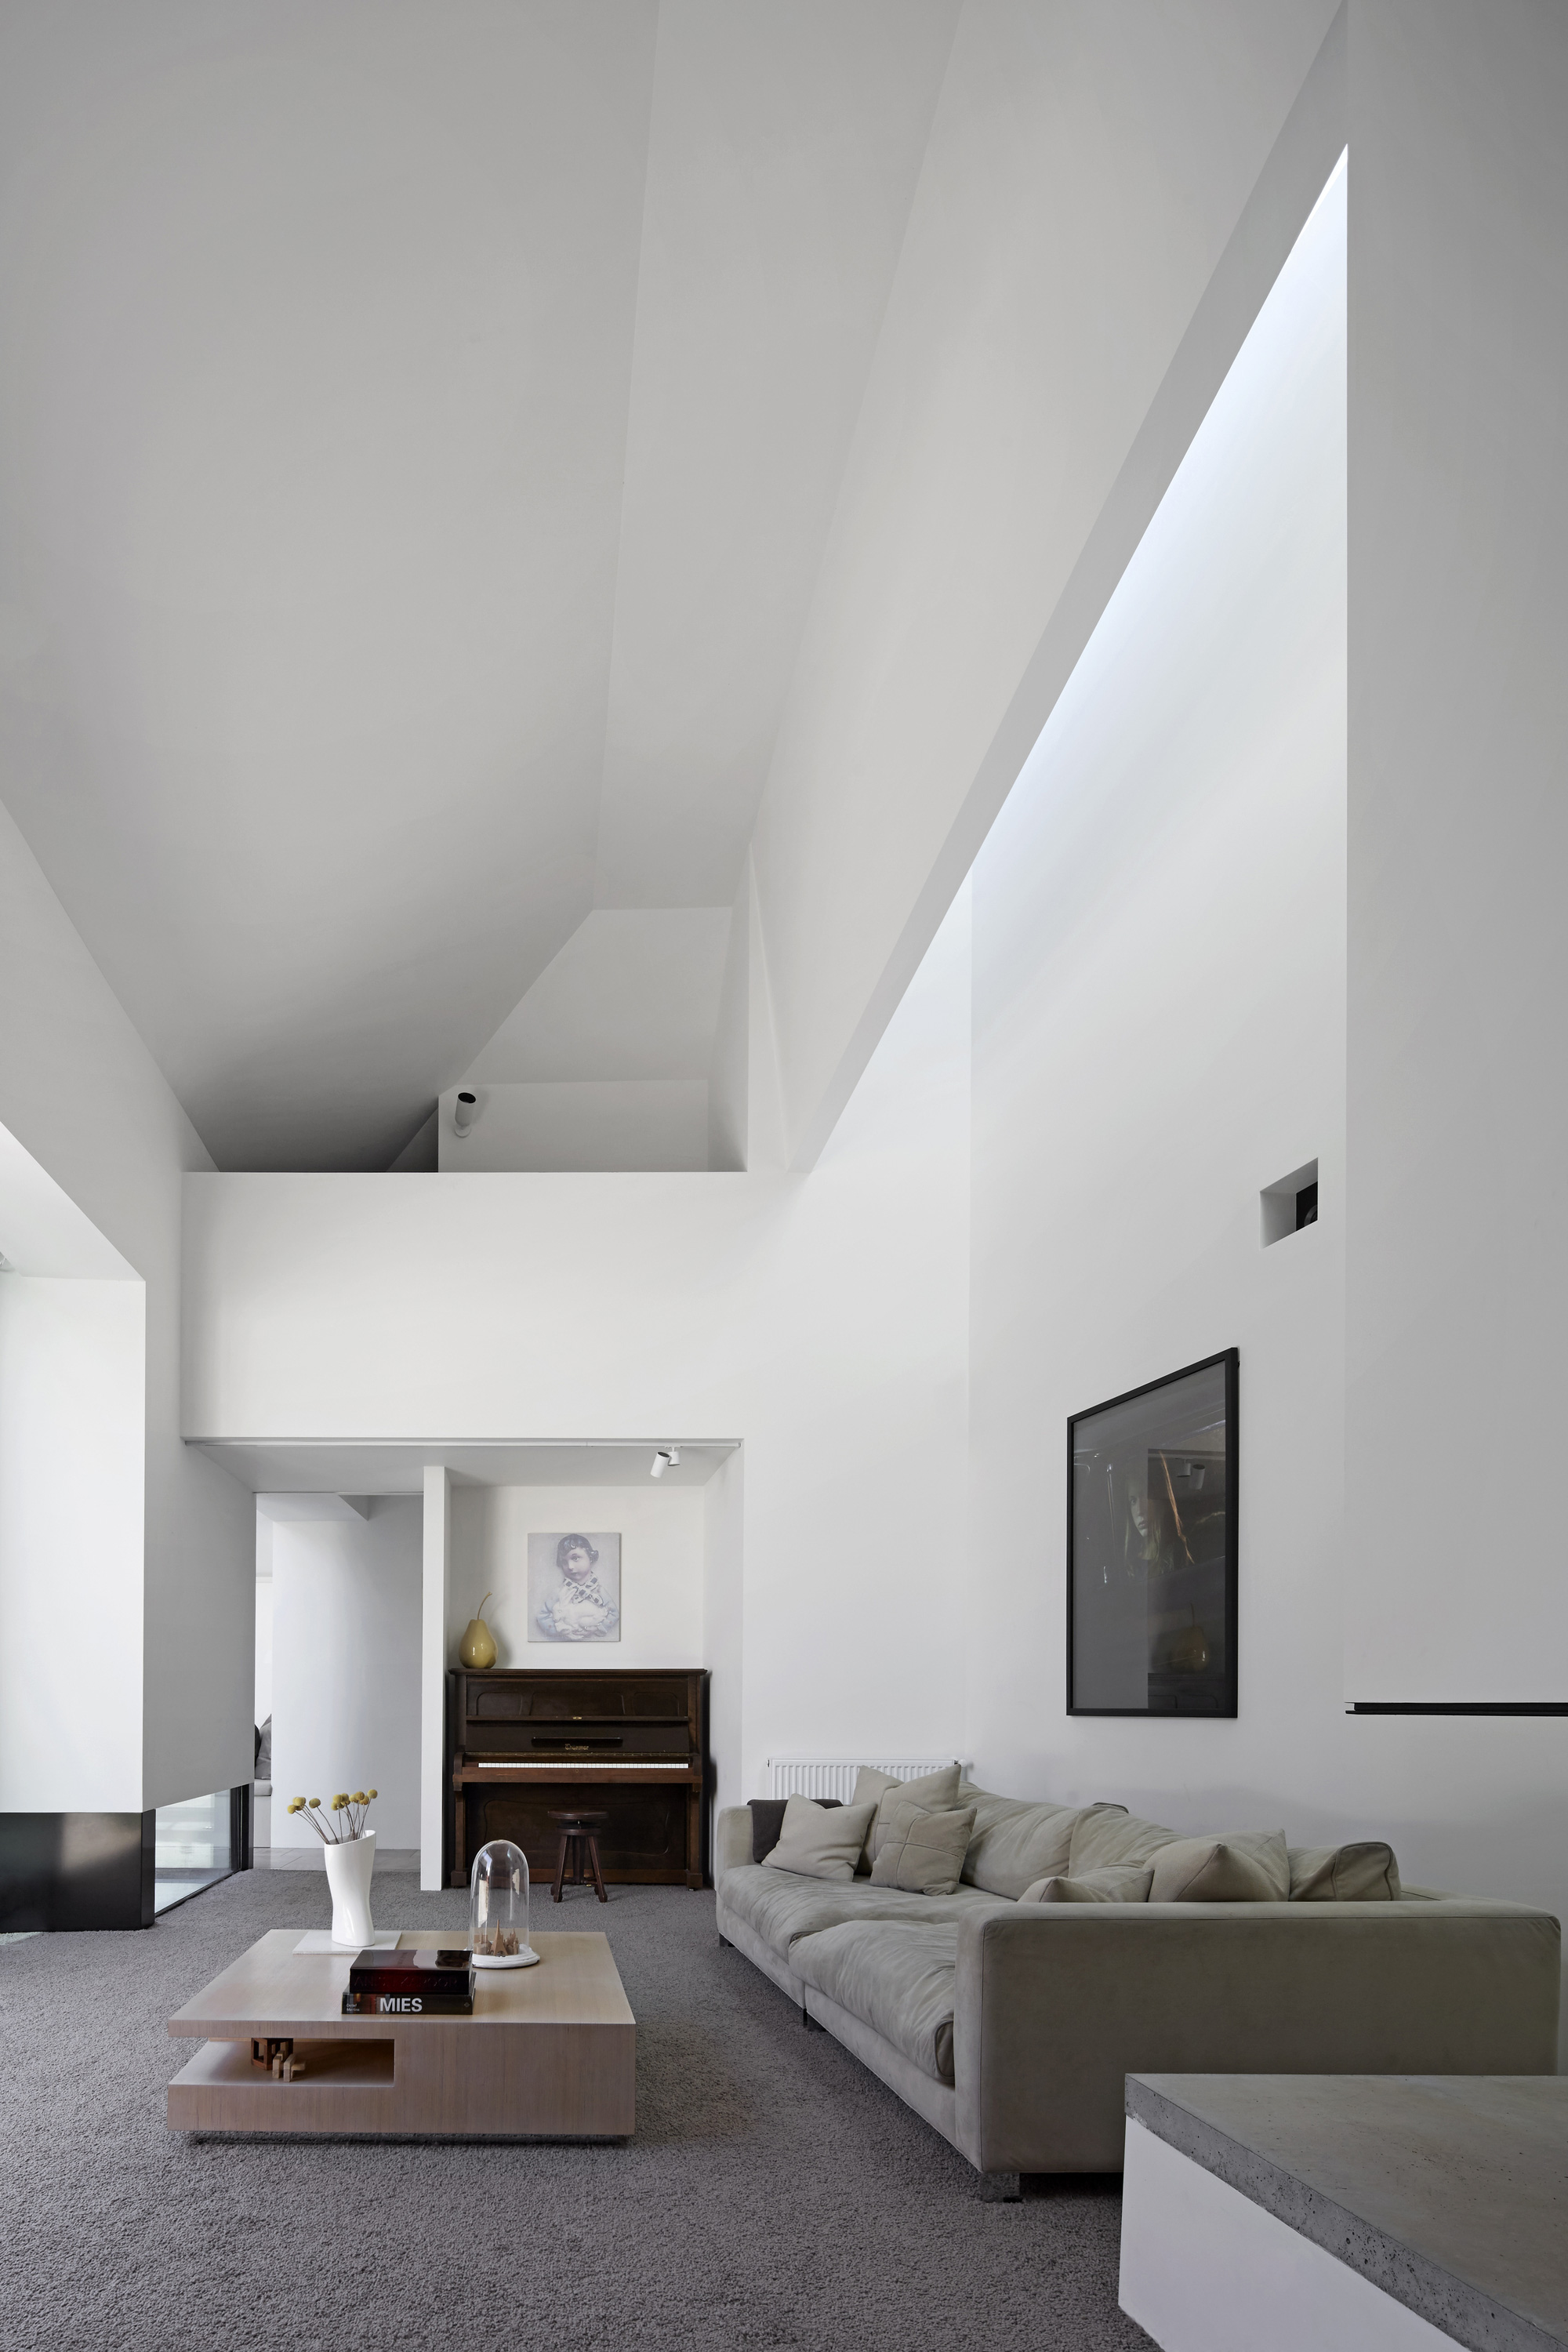 House 3 / Coy Yiontis Architects (17)